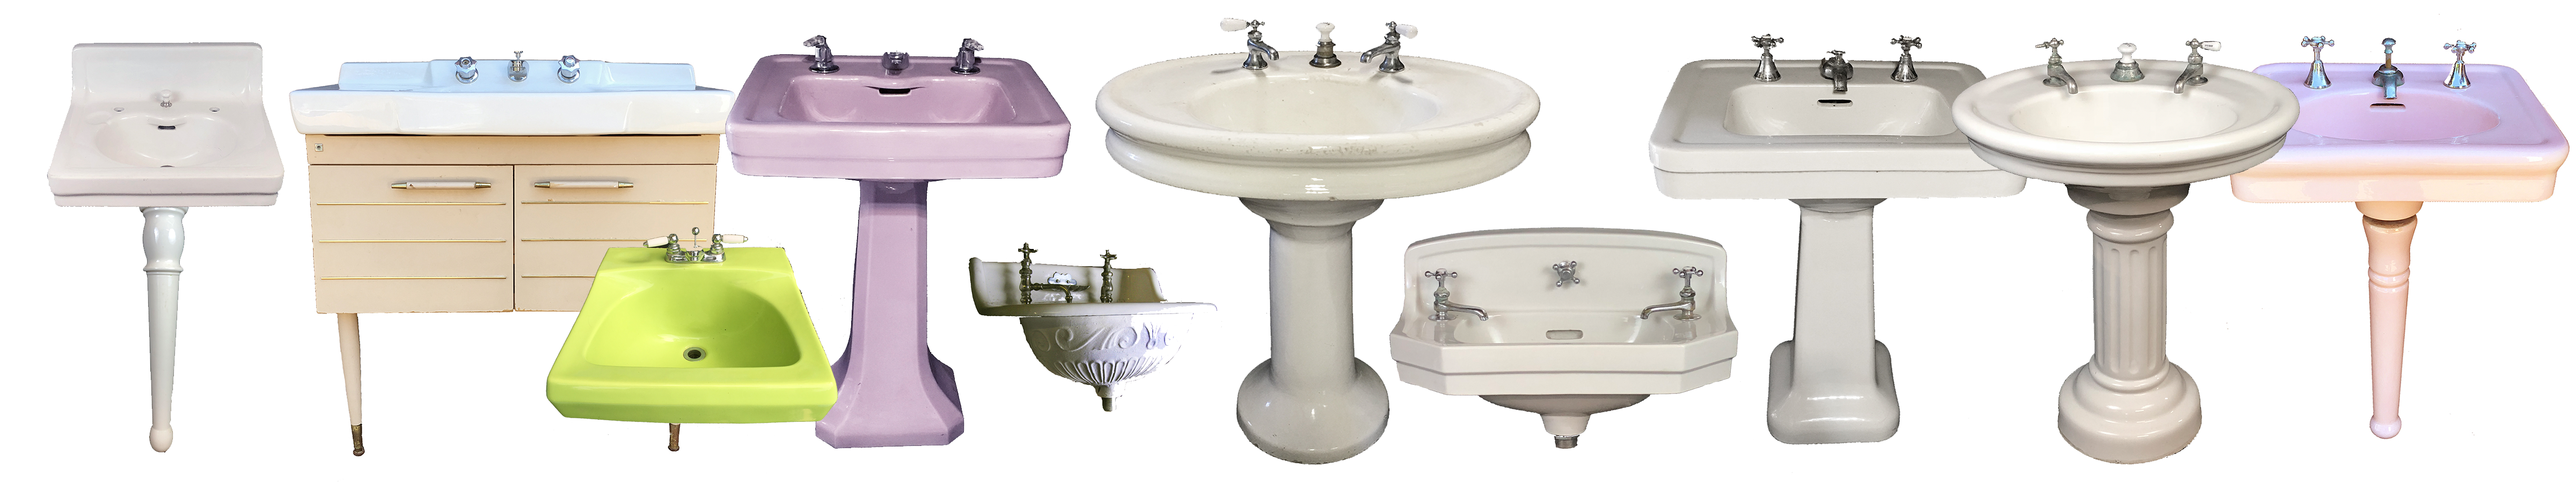 Picture of: The Period Bath Supply Company A Division Of Historic Houseparts Inc Antique Sinks Antique Pedestal Sinks